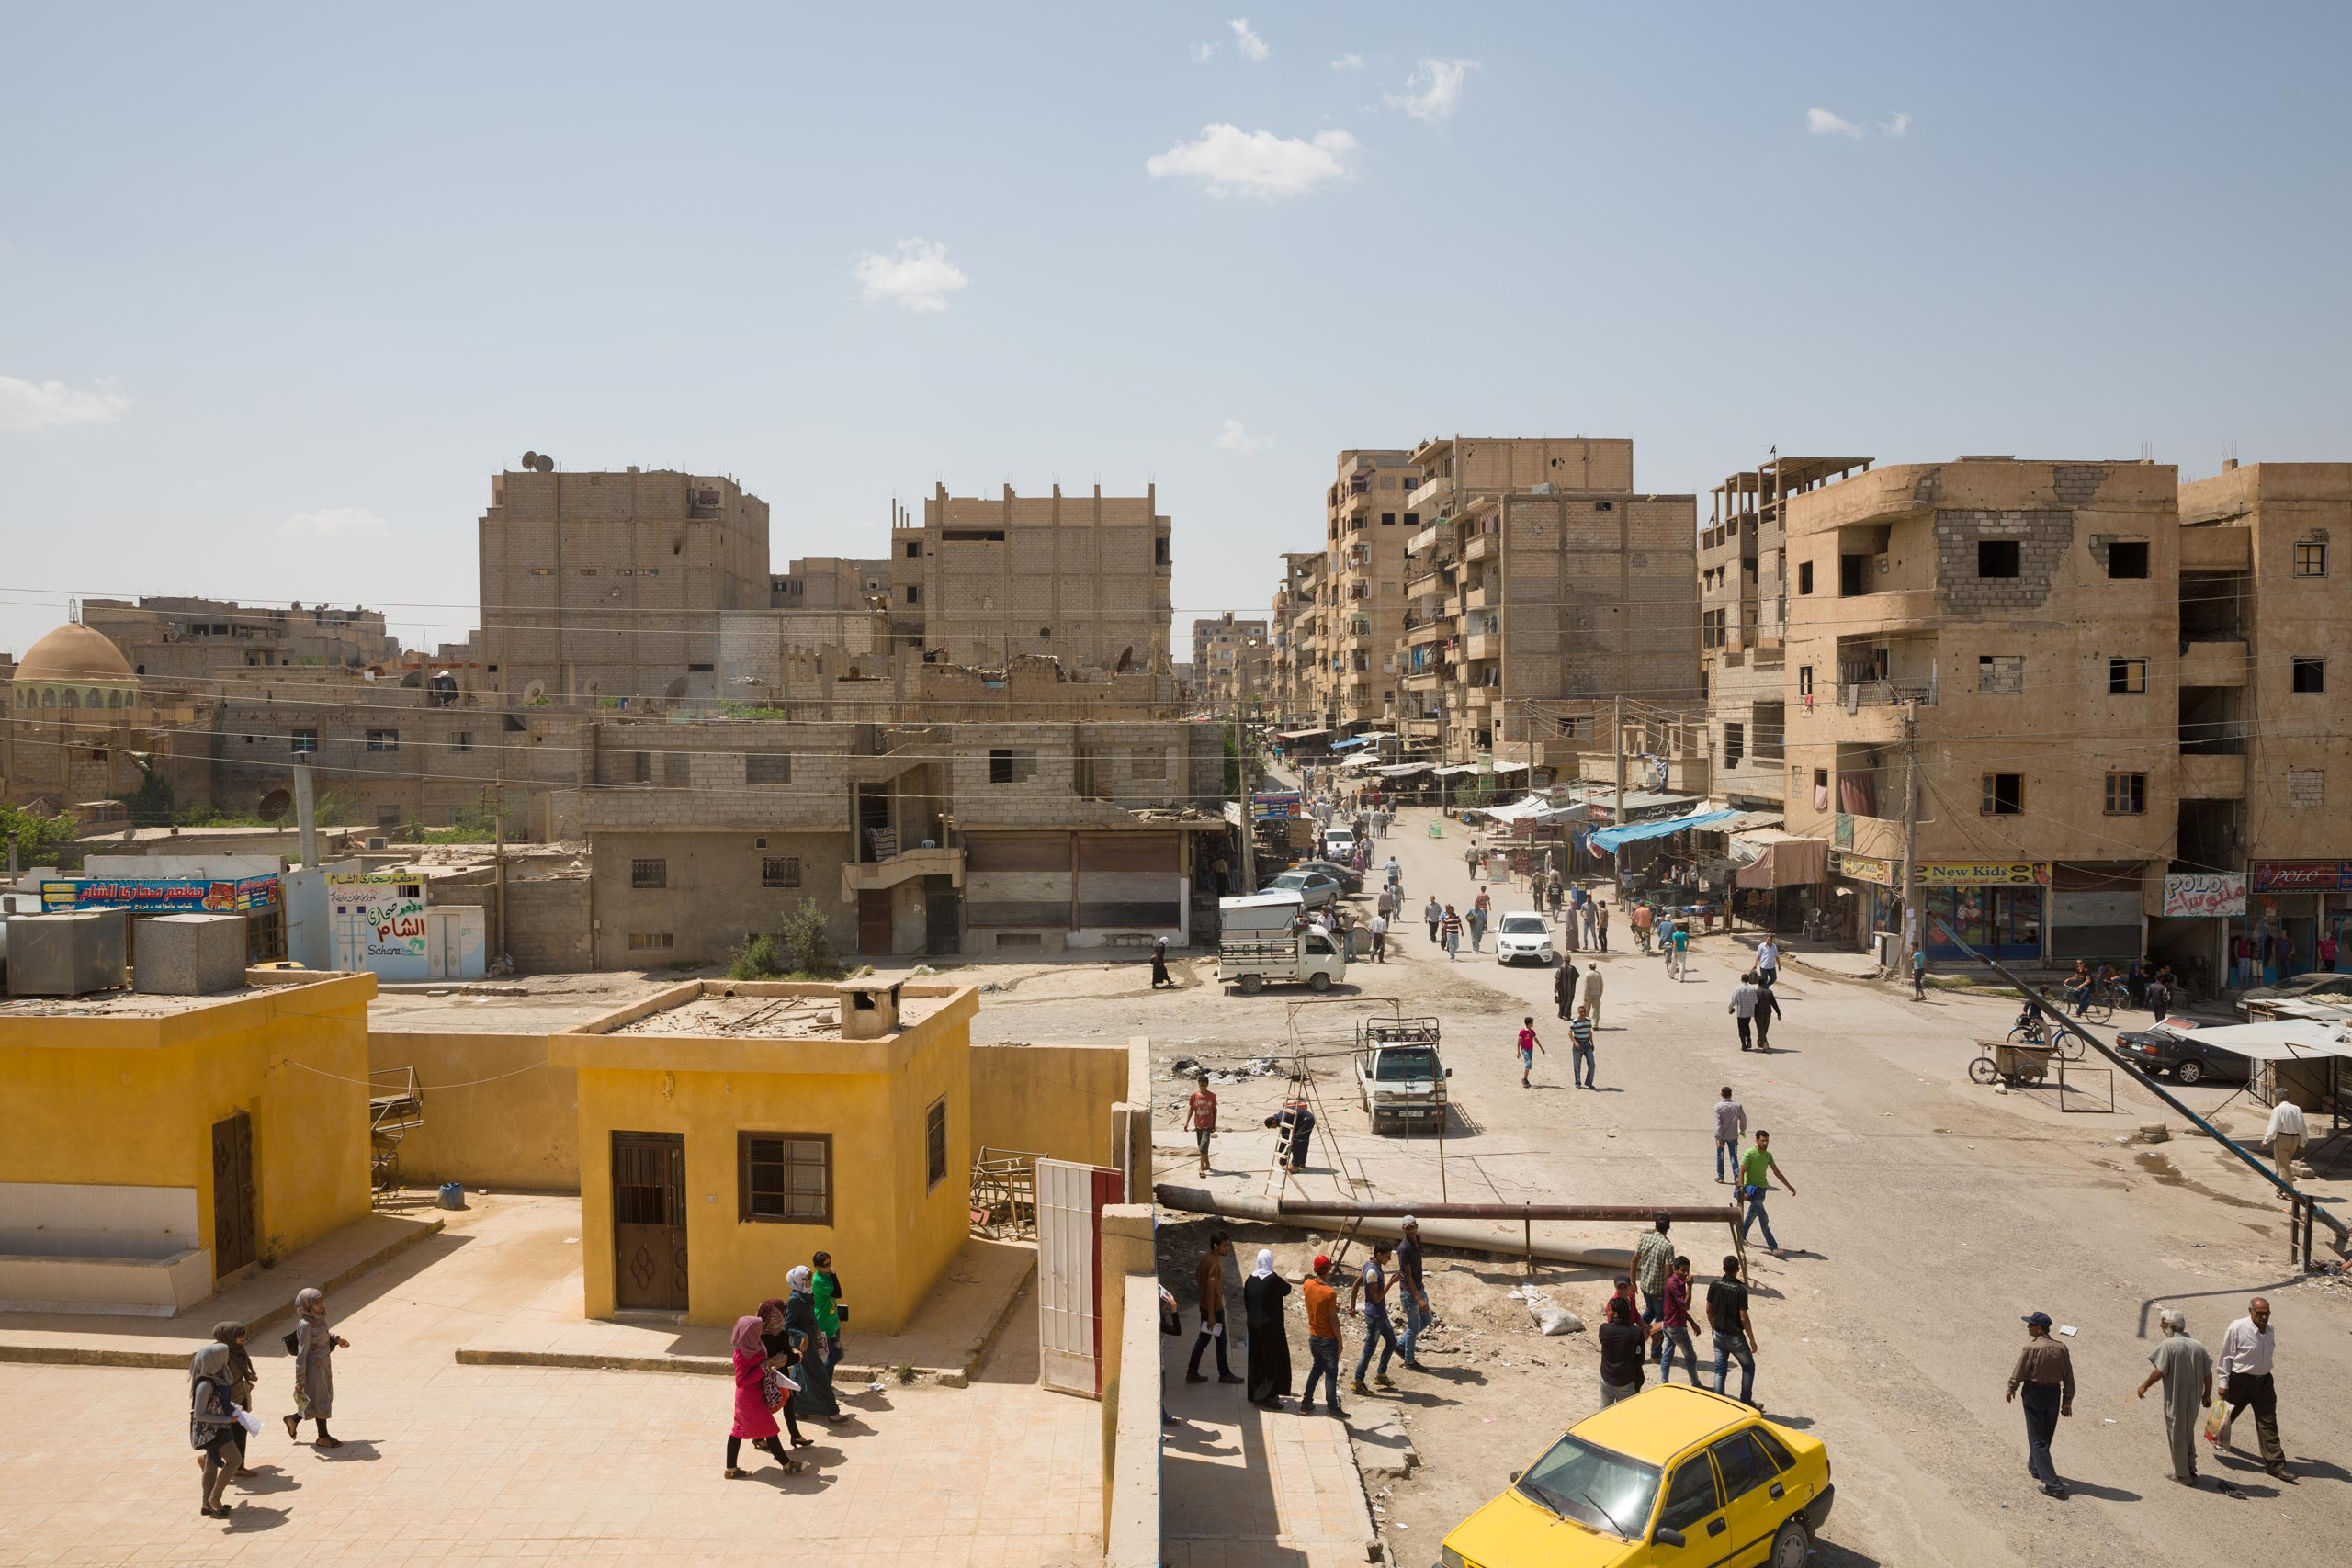 A view of the government-held section of Deir-ez Zor. The children on the left are leaving a school, which is still operating. In a siege that began in December 2014, ISIS fighters have encircled the city in Syria's eastern desert, May 24, 2015.